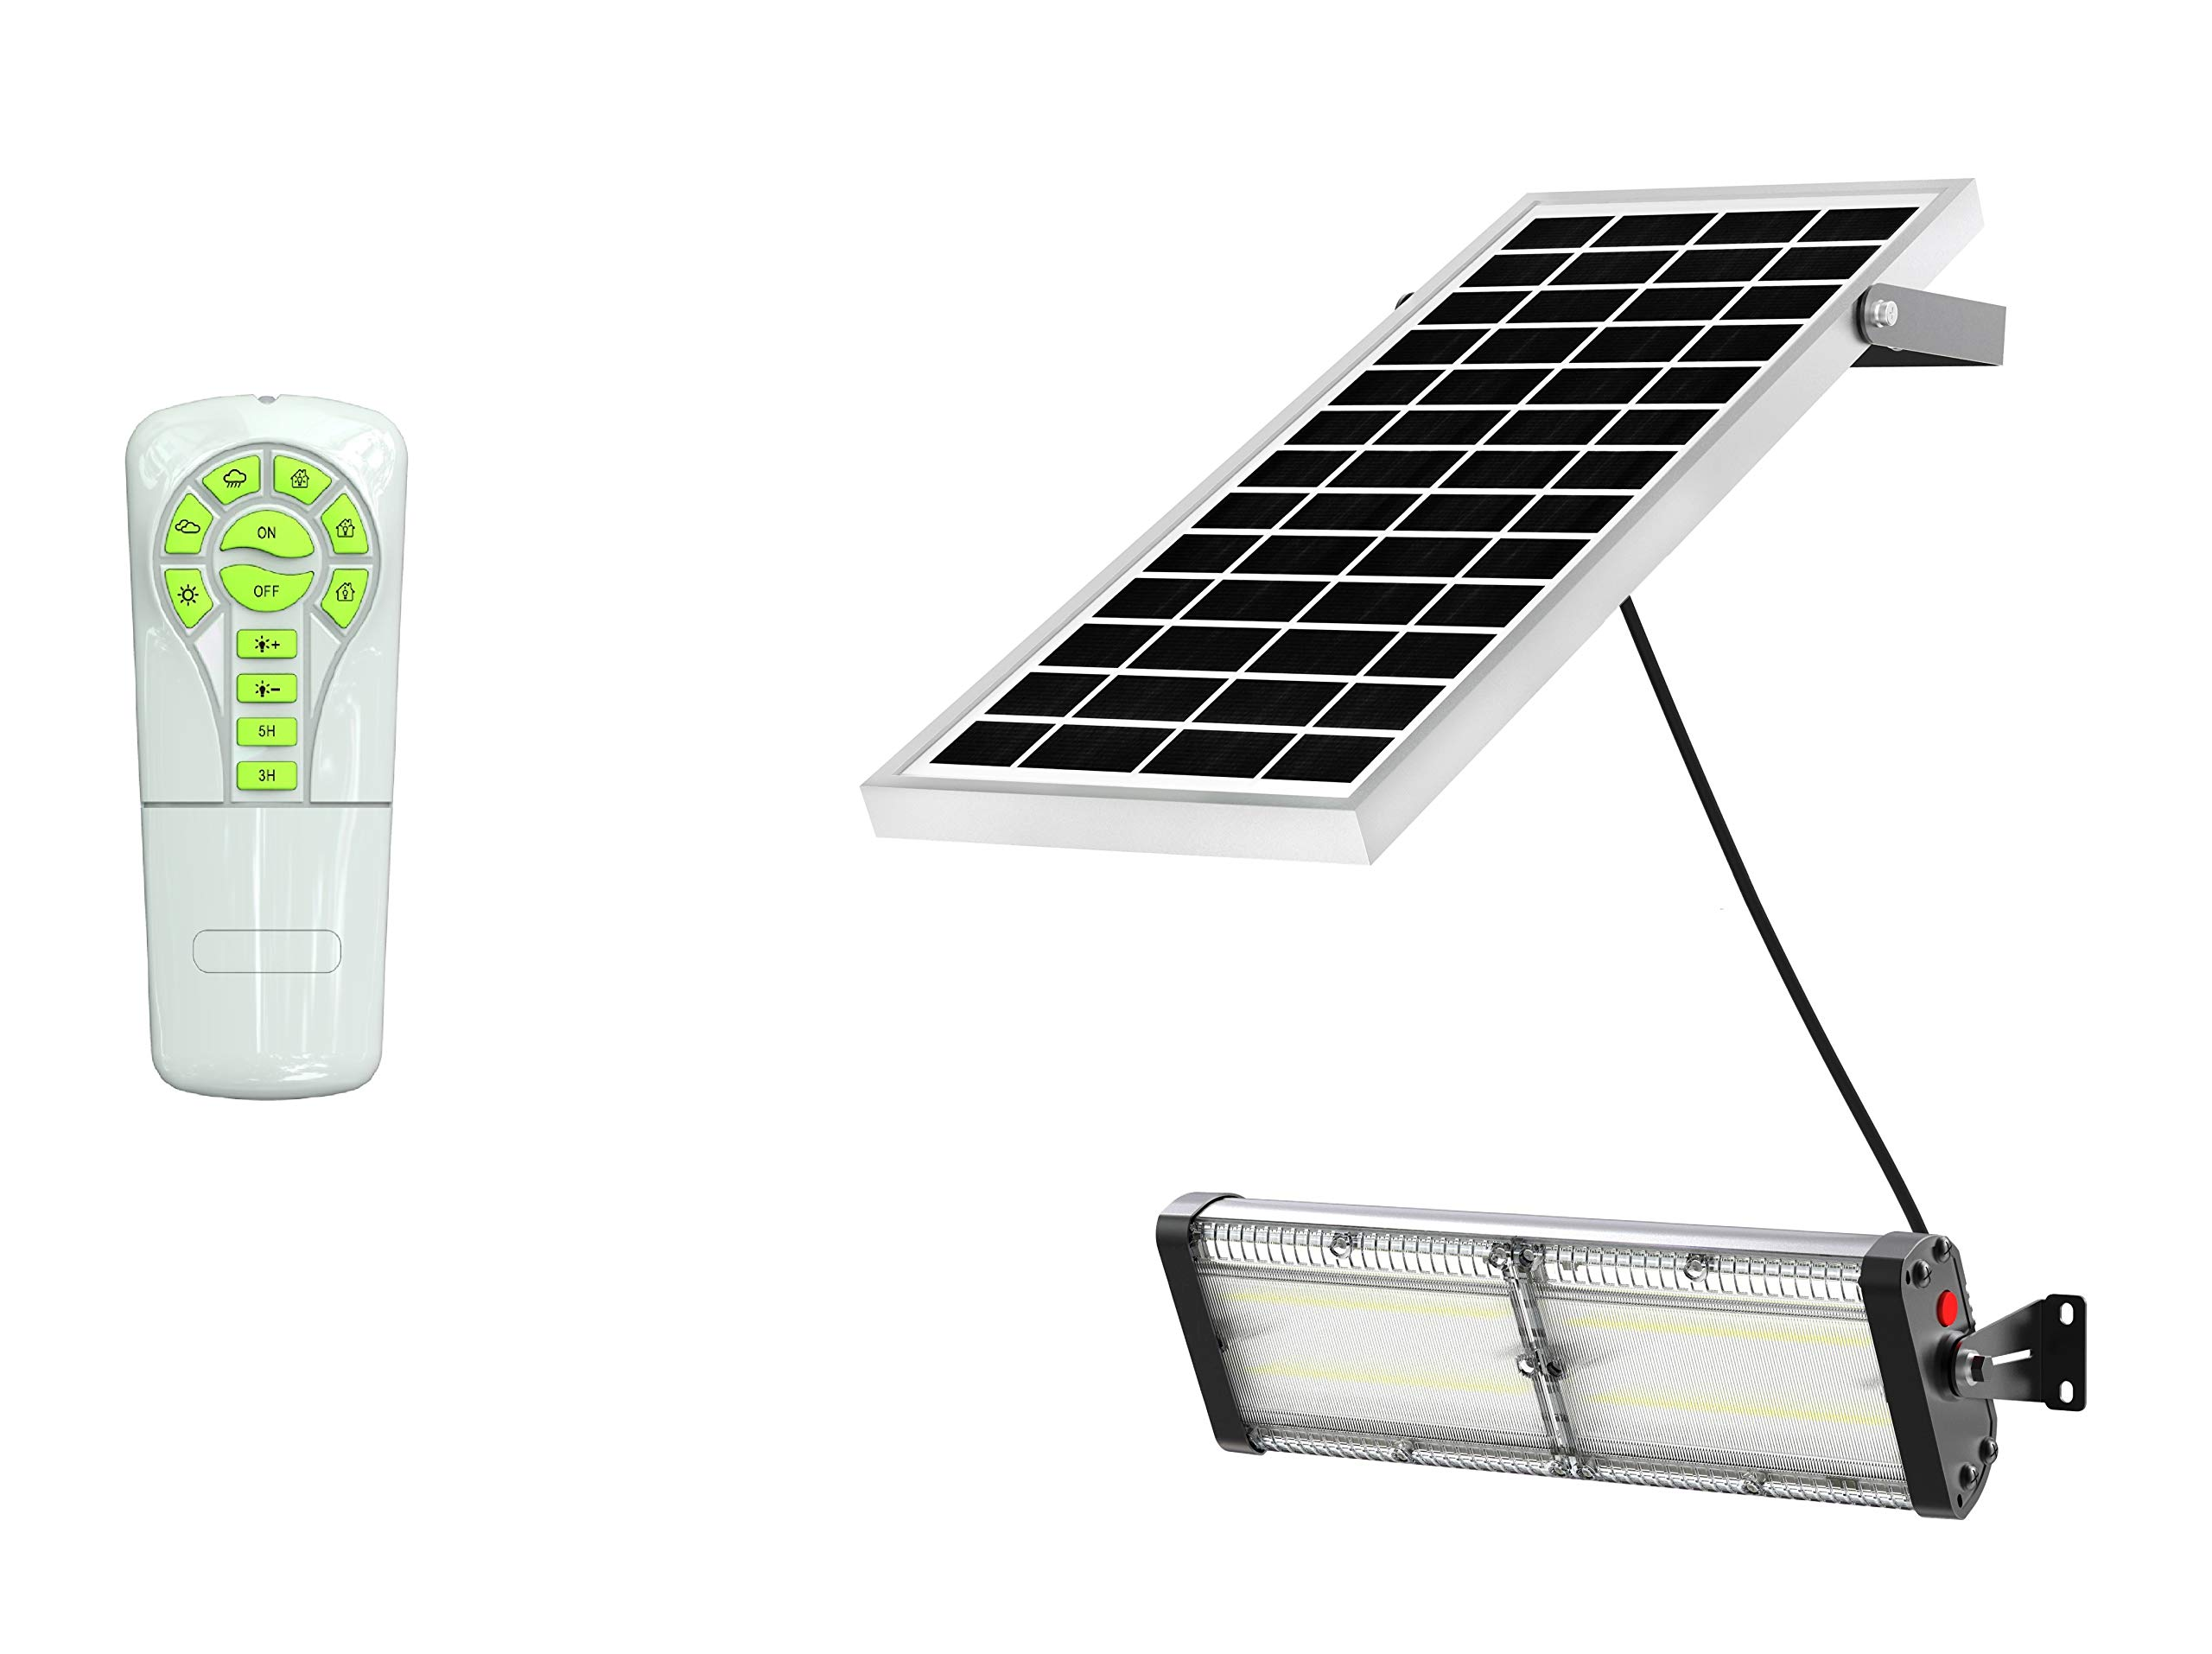 Solar LED Barn Light, 12,000mah Li-ion Battery for Outdoor/Indoor Flood Light with Remote Control, 4,000 Lumen by SPC